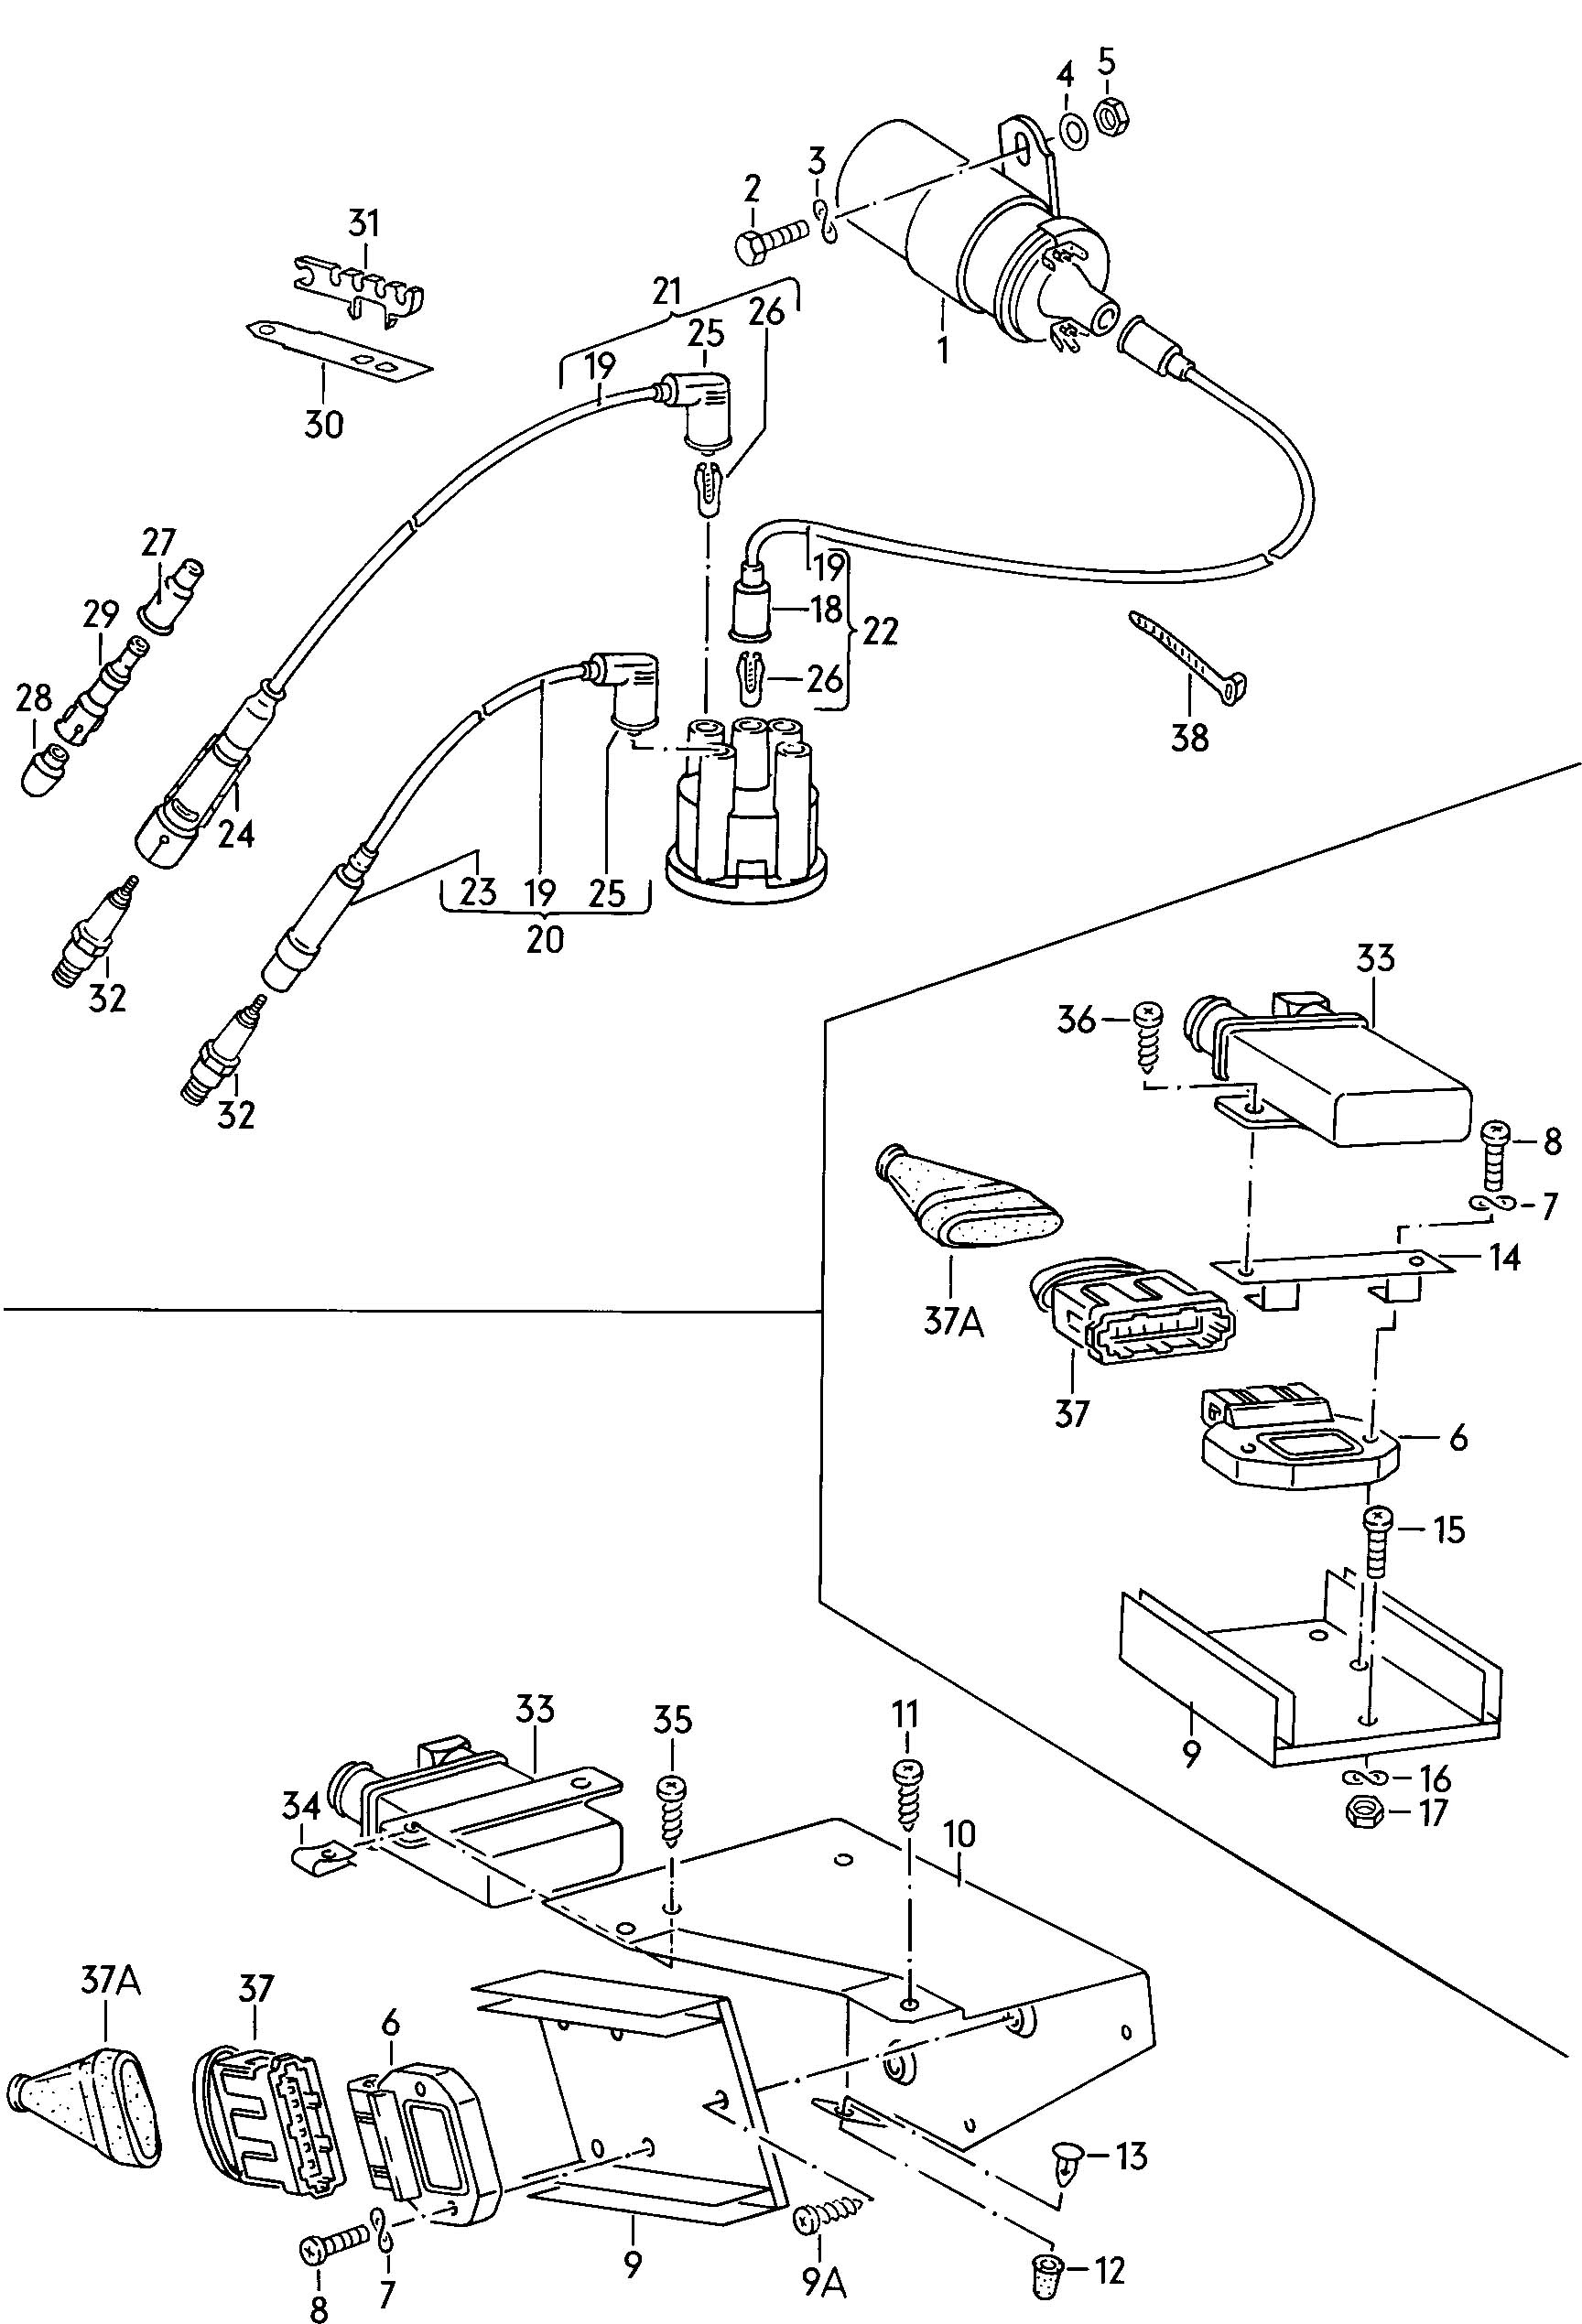 dune buggy wiring diagram | free download wiring diagrams pictures